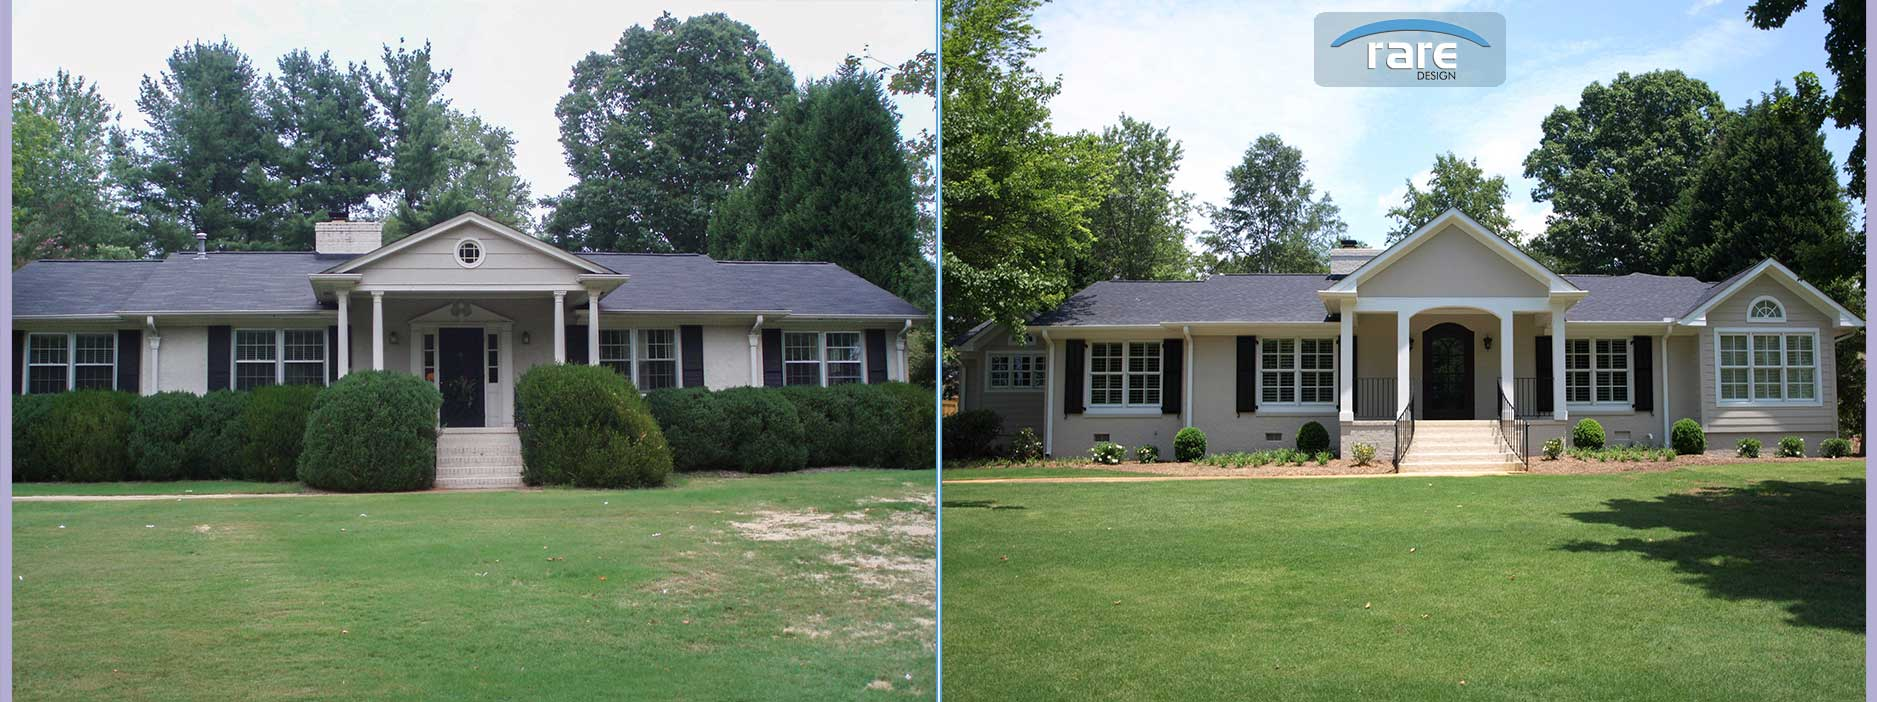 Greenville home remodeling raredesign inc Before and after home exteriors remodels